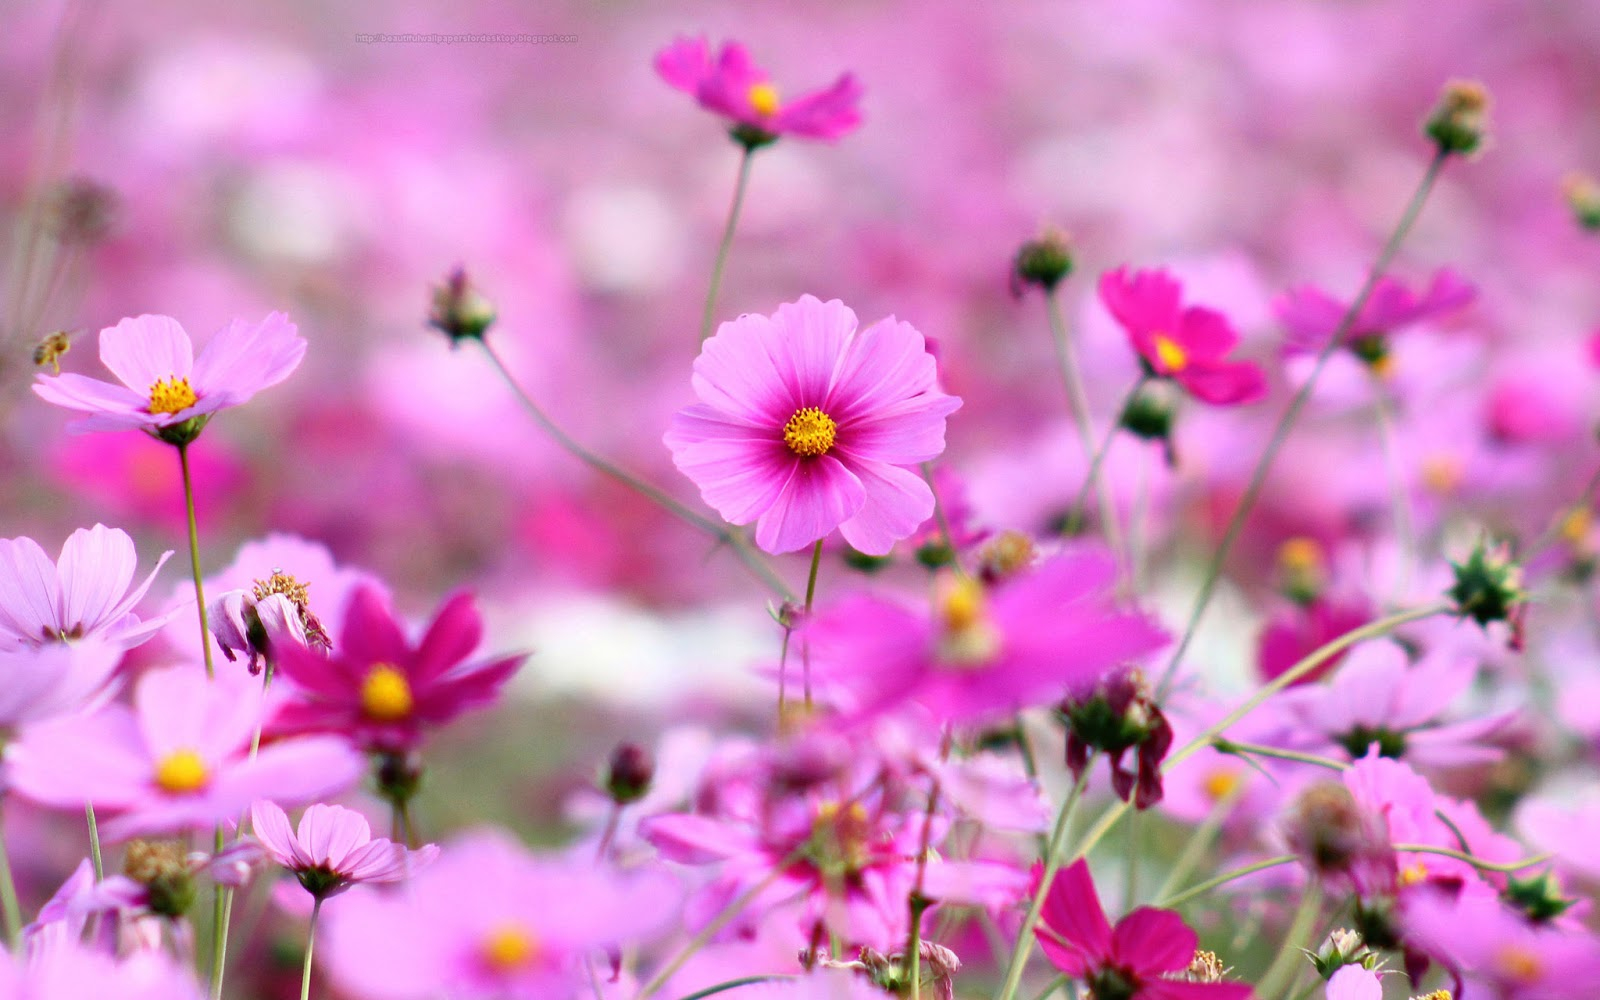 Beautiful Desktop HD Wallpapers 1080p: Purple Flowers HD Wallpapers